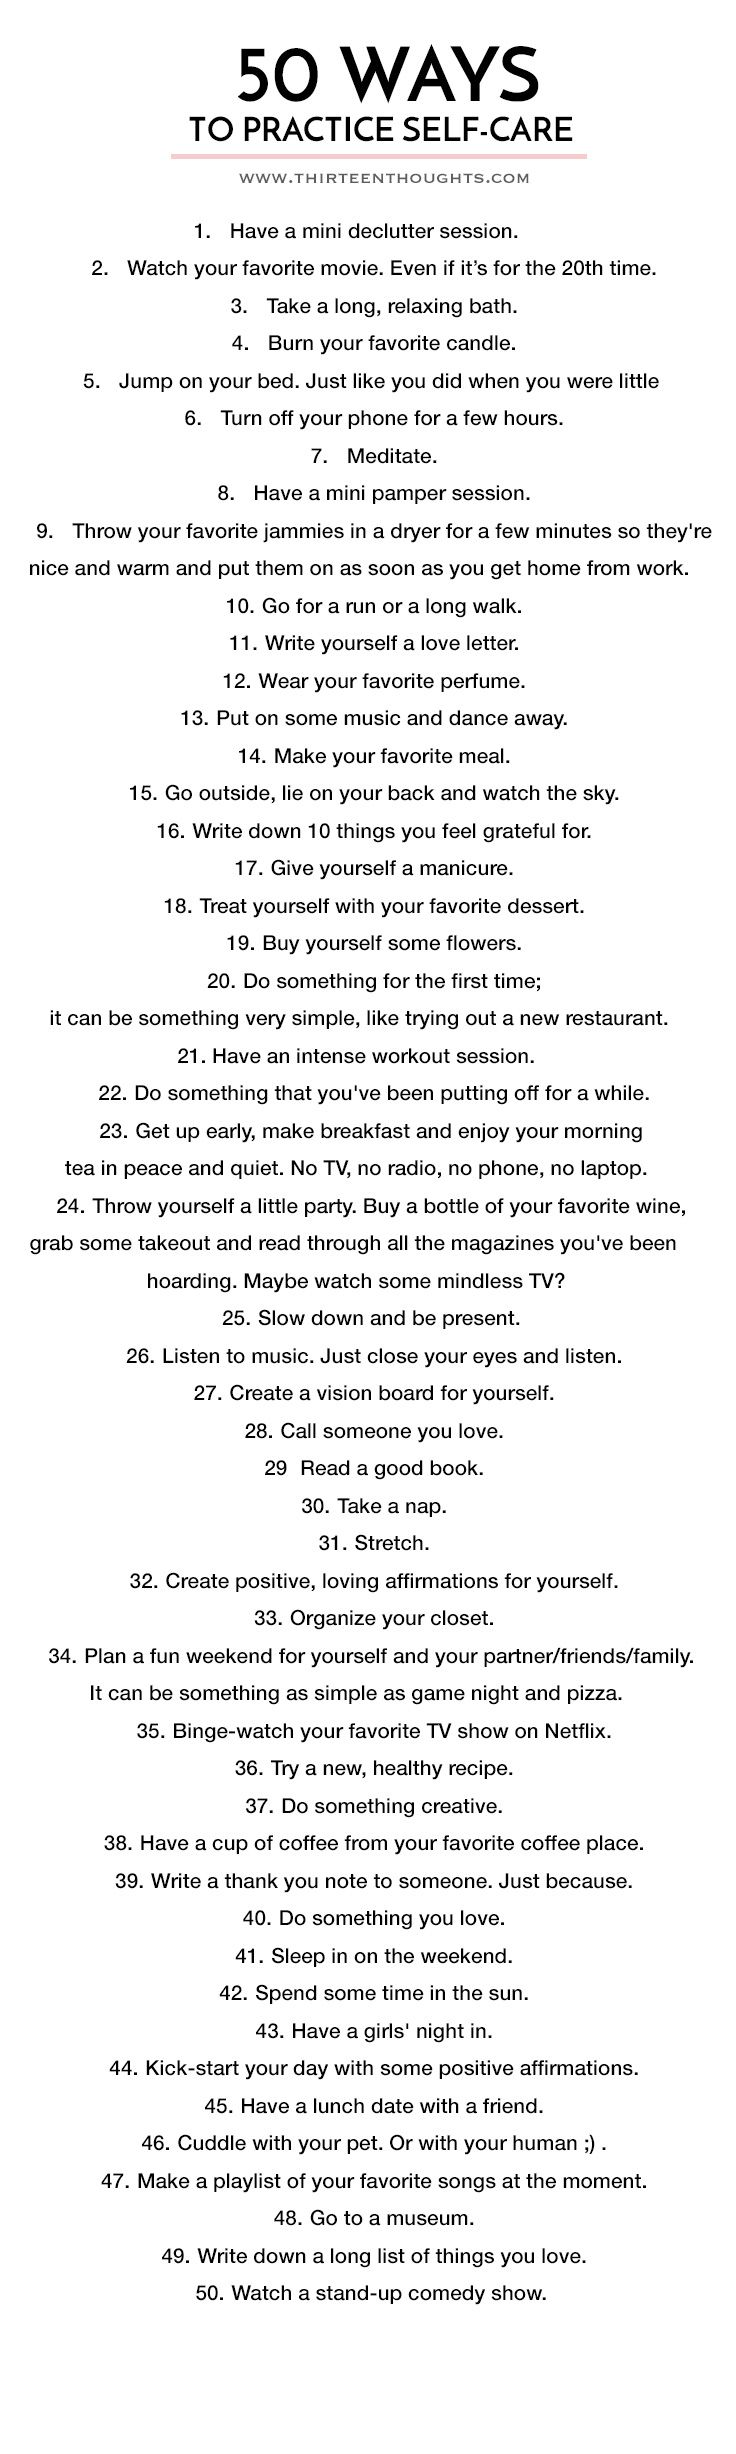 Self-care | how to practice self-care | self-care rituals | self-care ideas | 50 self-care ideas | how to practice self-care | self-care activities | wellness | slow living | wellness blog | lifestyle blog |